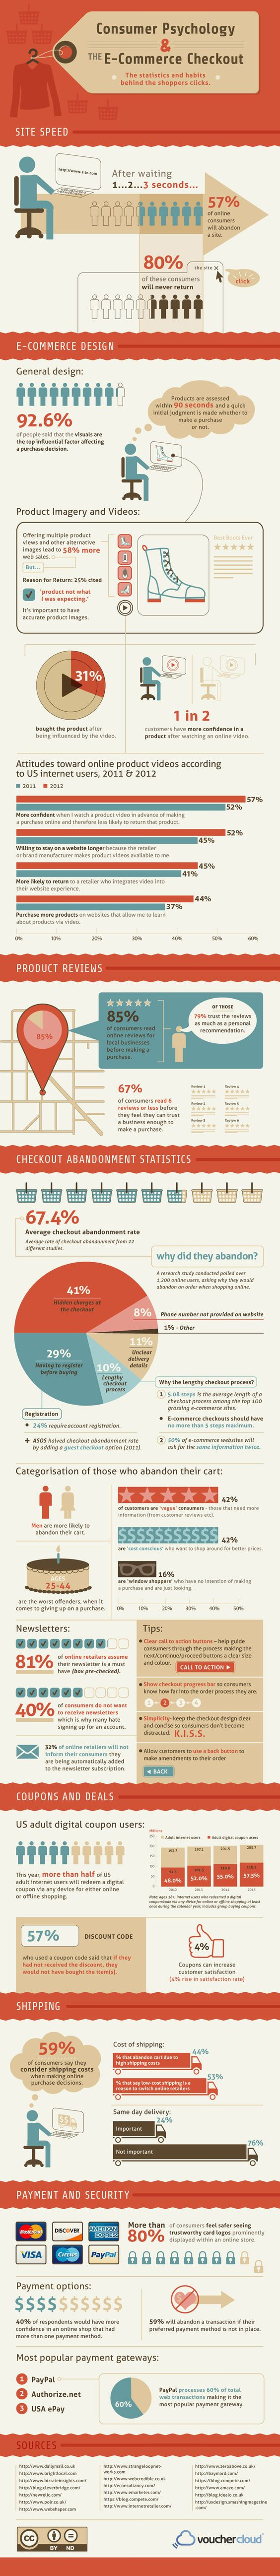 15 Infographics on the Psychology of Online Sales & Marketing